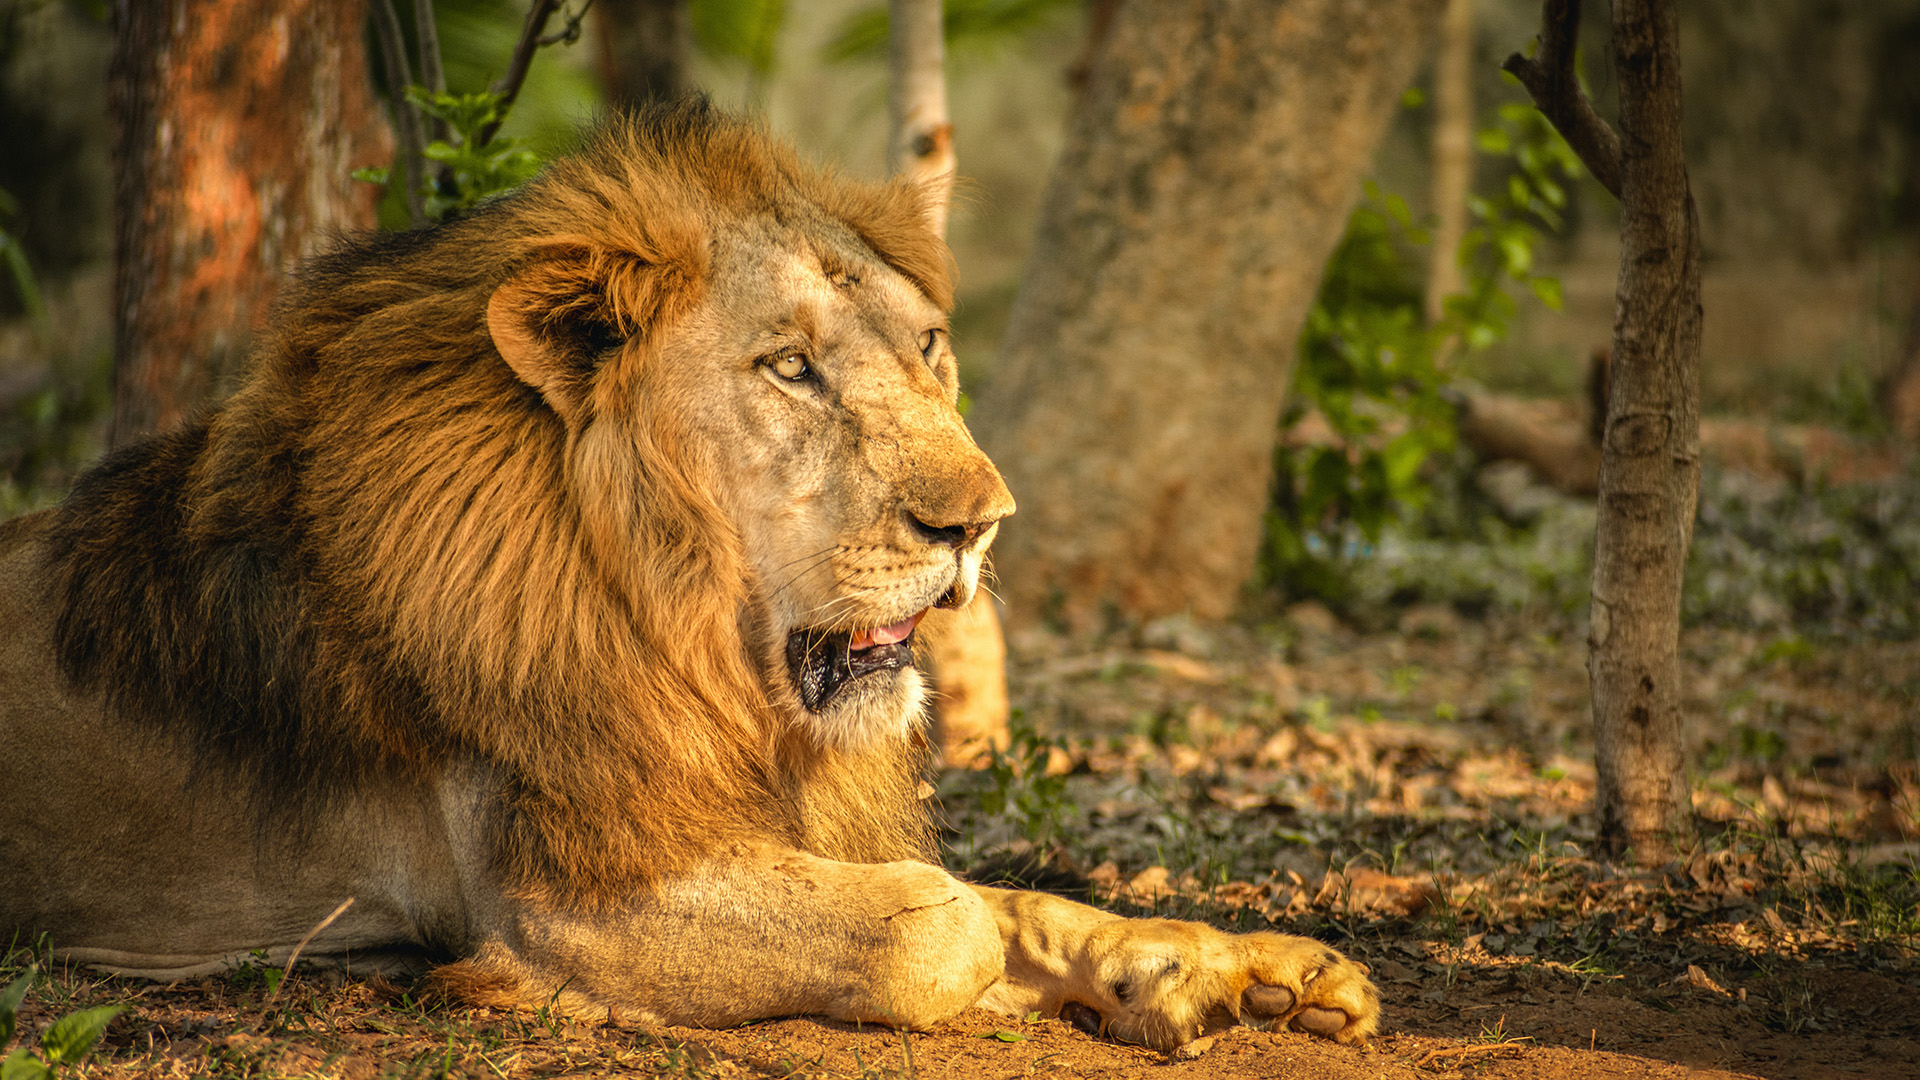 Indian Prime Minister Lauds Conservation Efforts, Notes Steady Increase In India's Lion Population